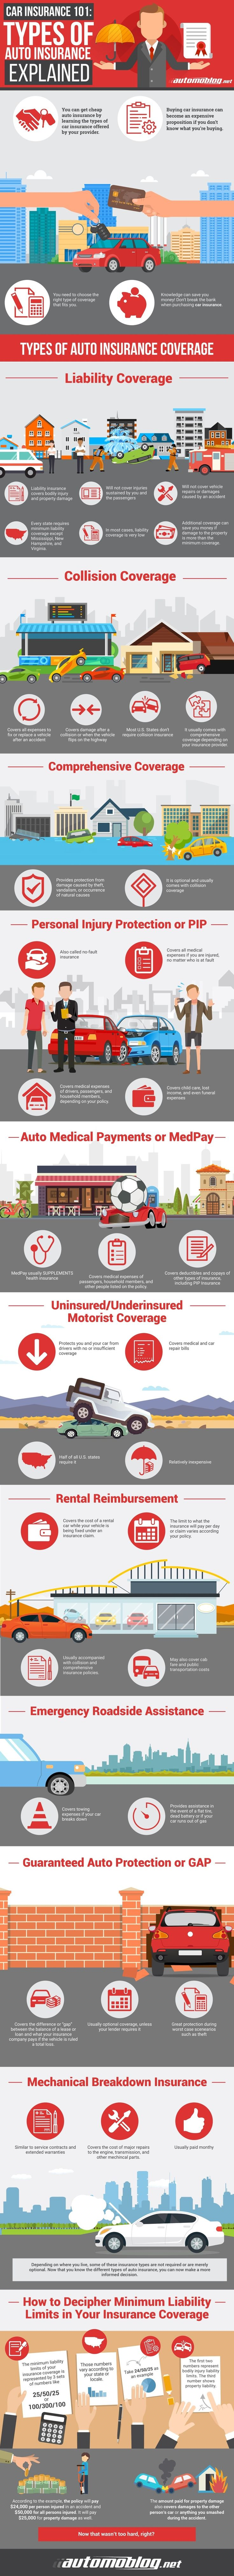 Are You Being Duped Into Buy A Car Insurance? - Infographic